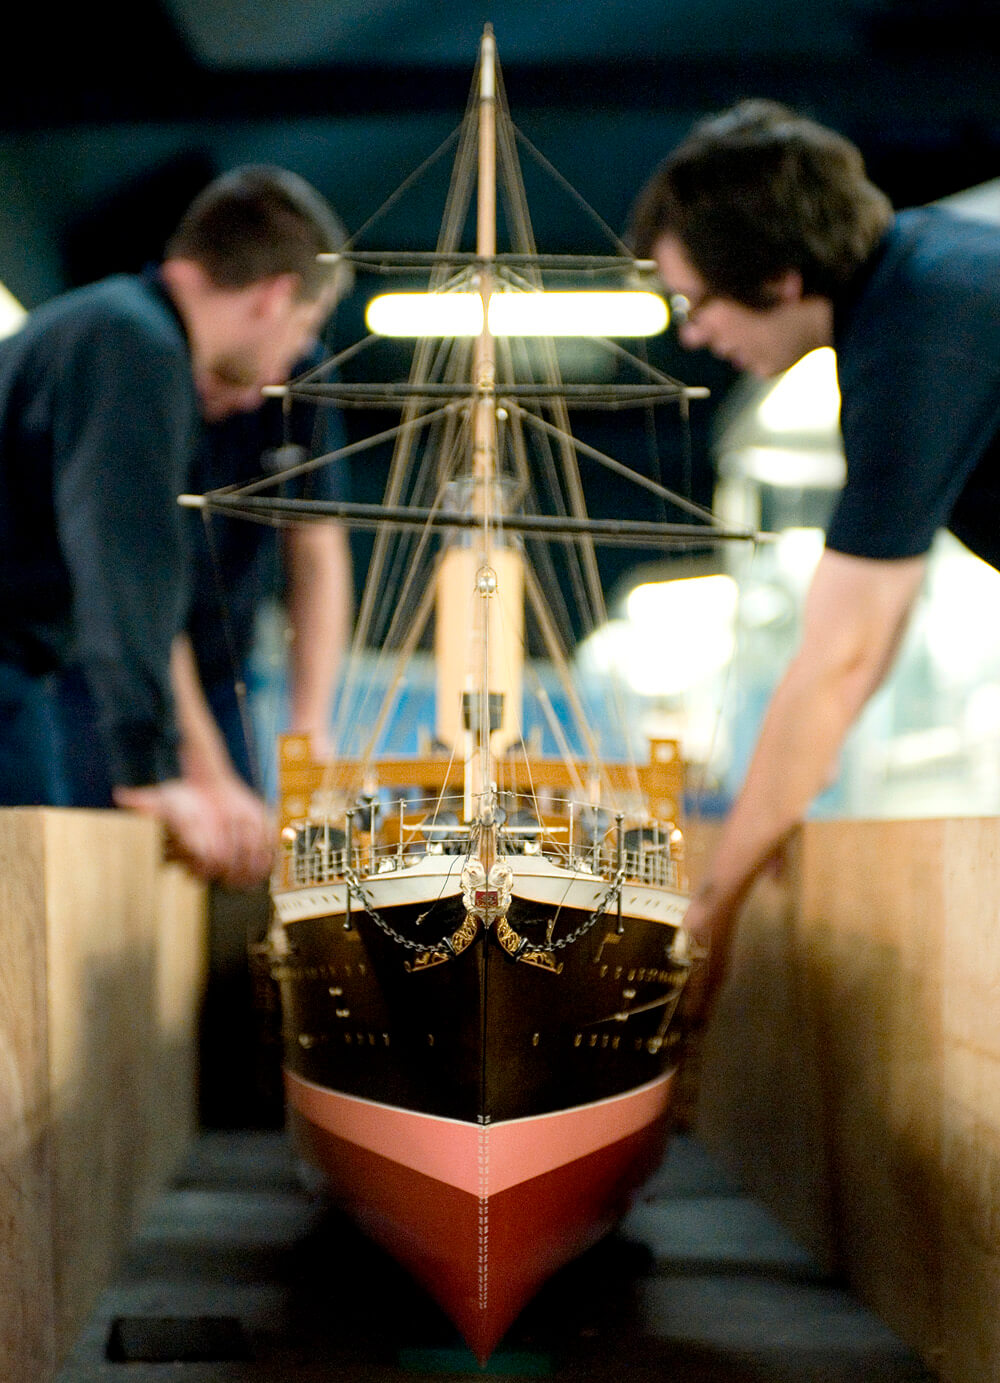 Two staff members at Riverside Museum holding a large model of a ship.